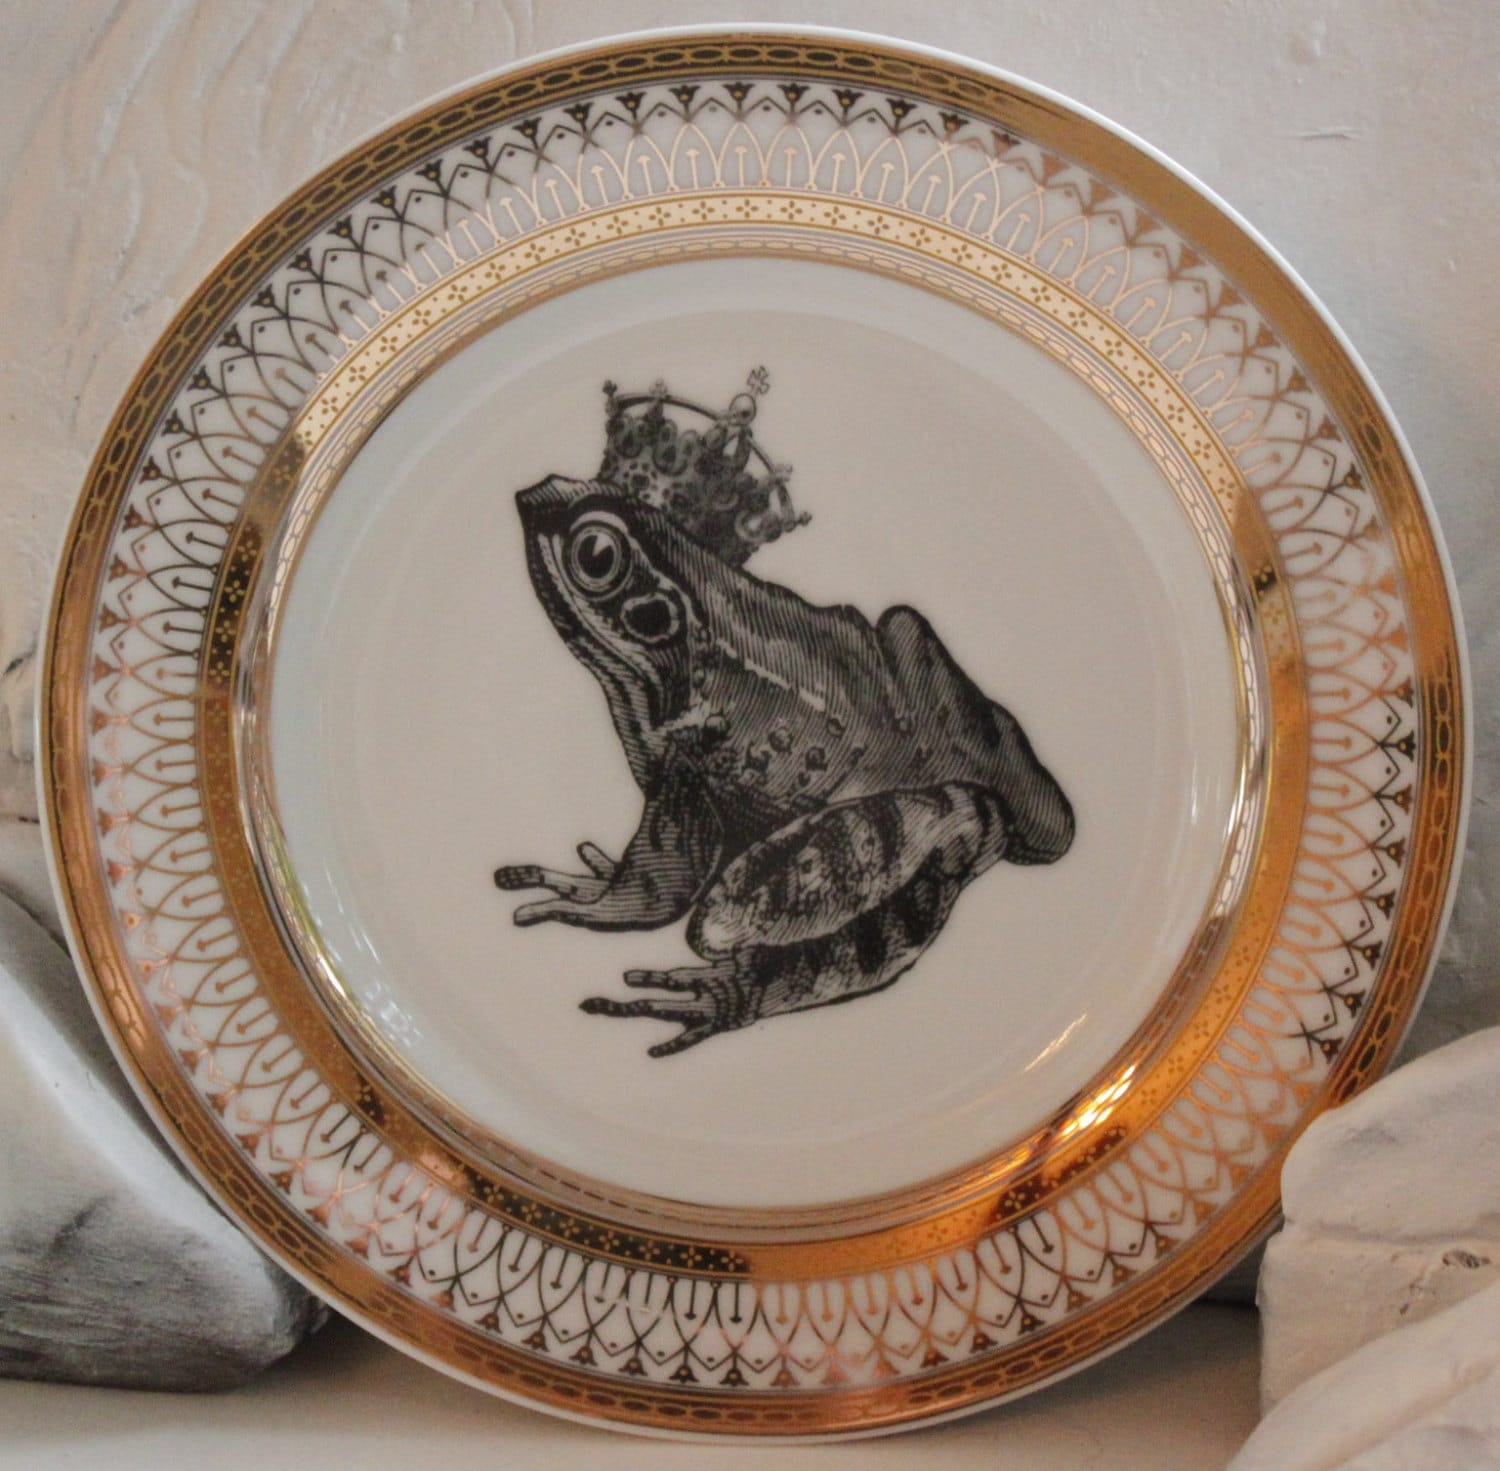 ?zoom & Foodsafe Frog Toad Gold Silver Dinnerware/Plates/Dishes